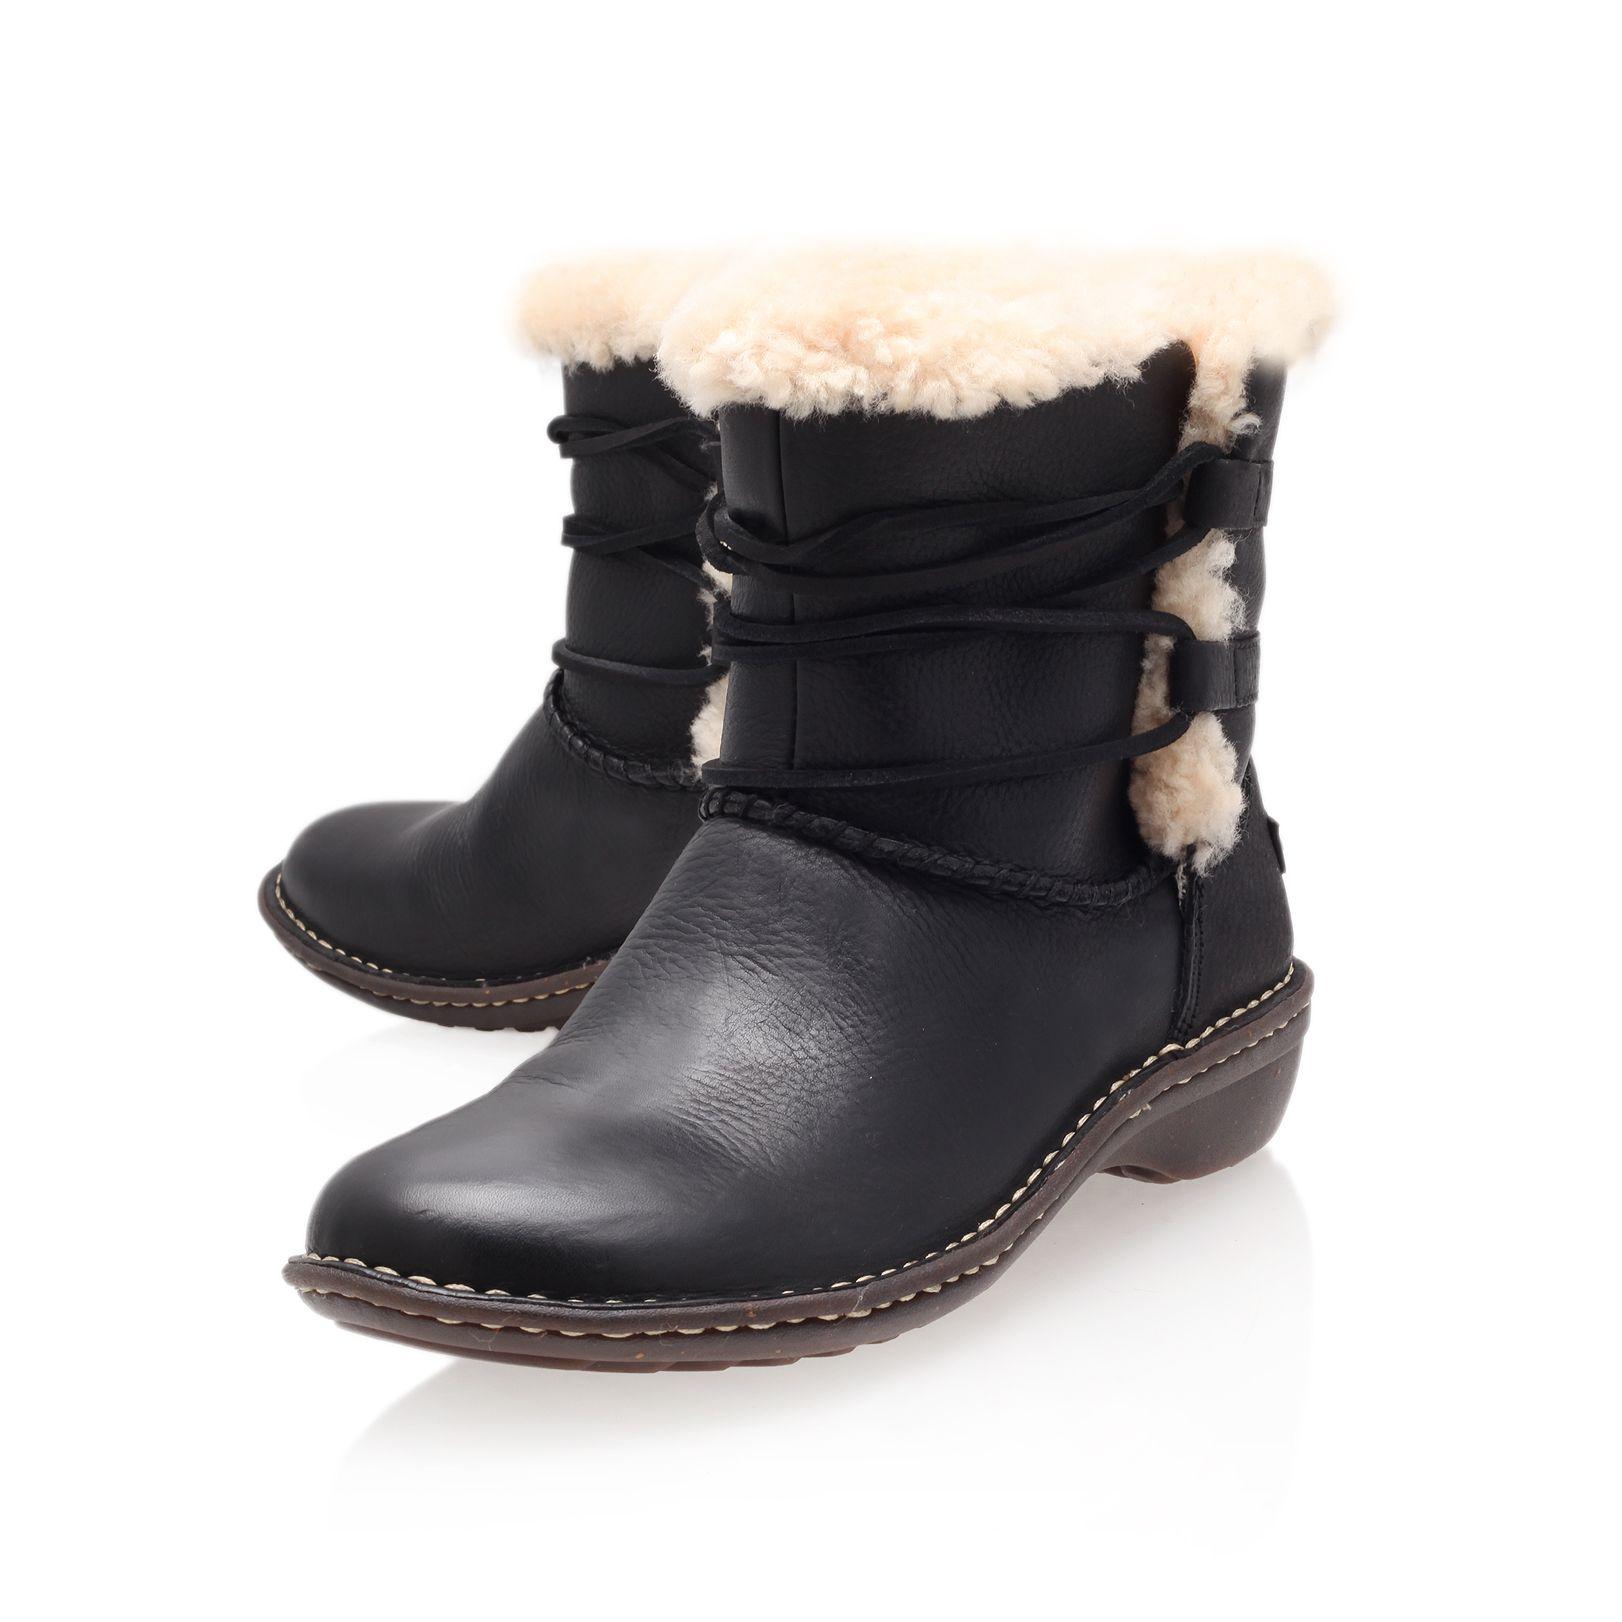 ugg boots rianne uk